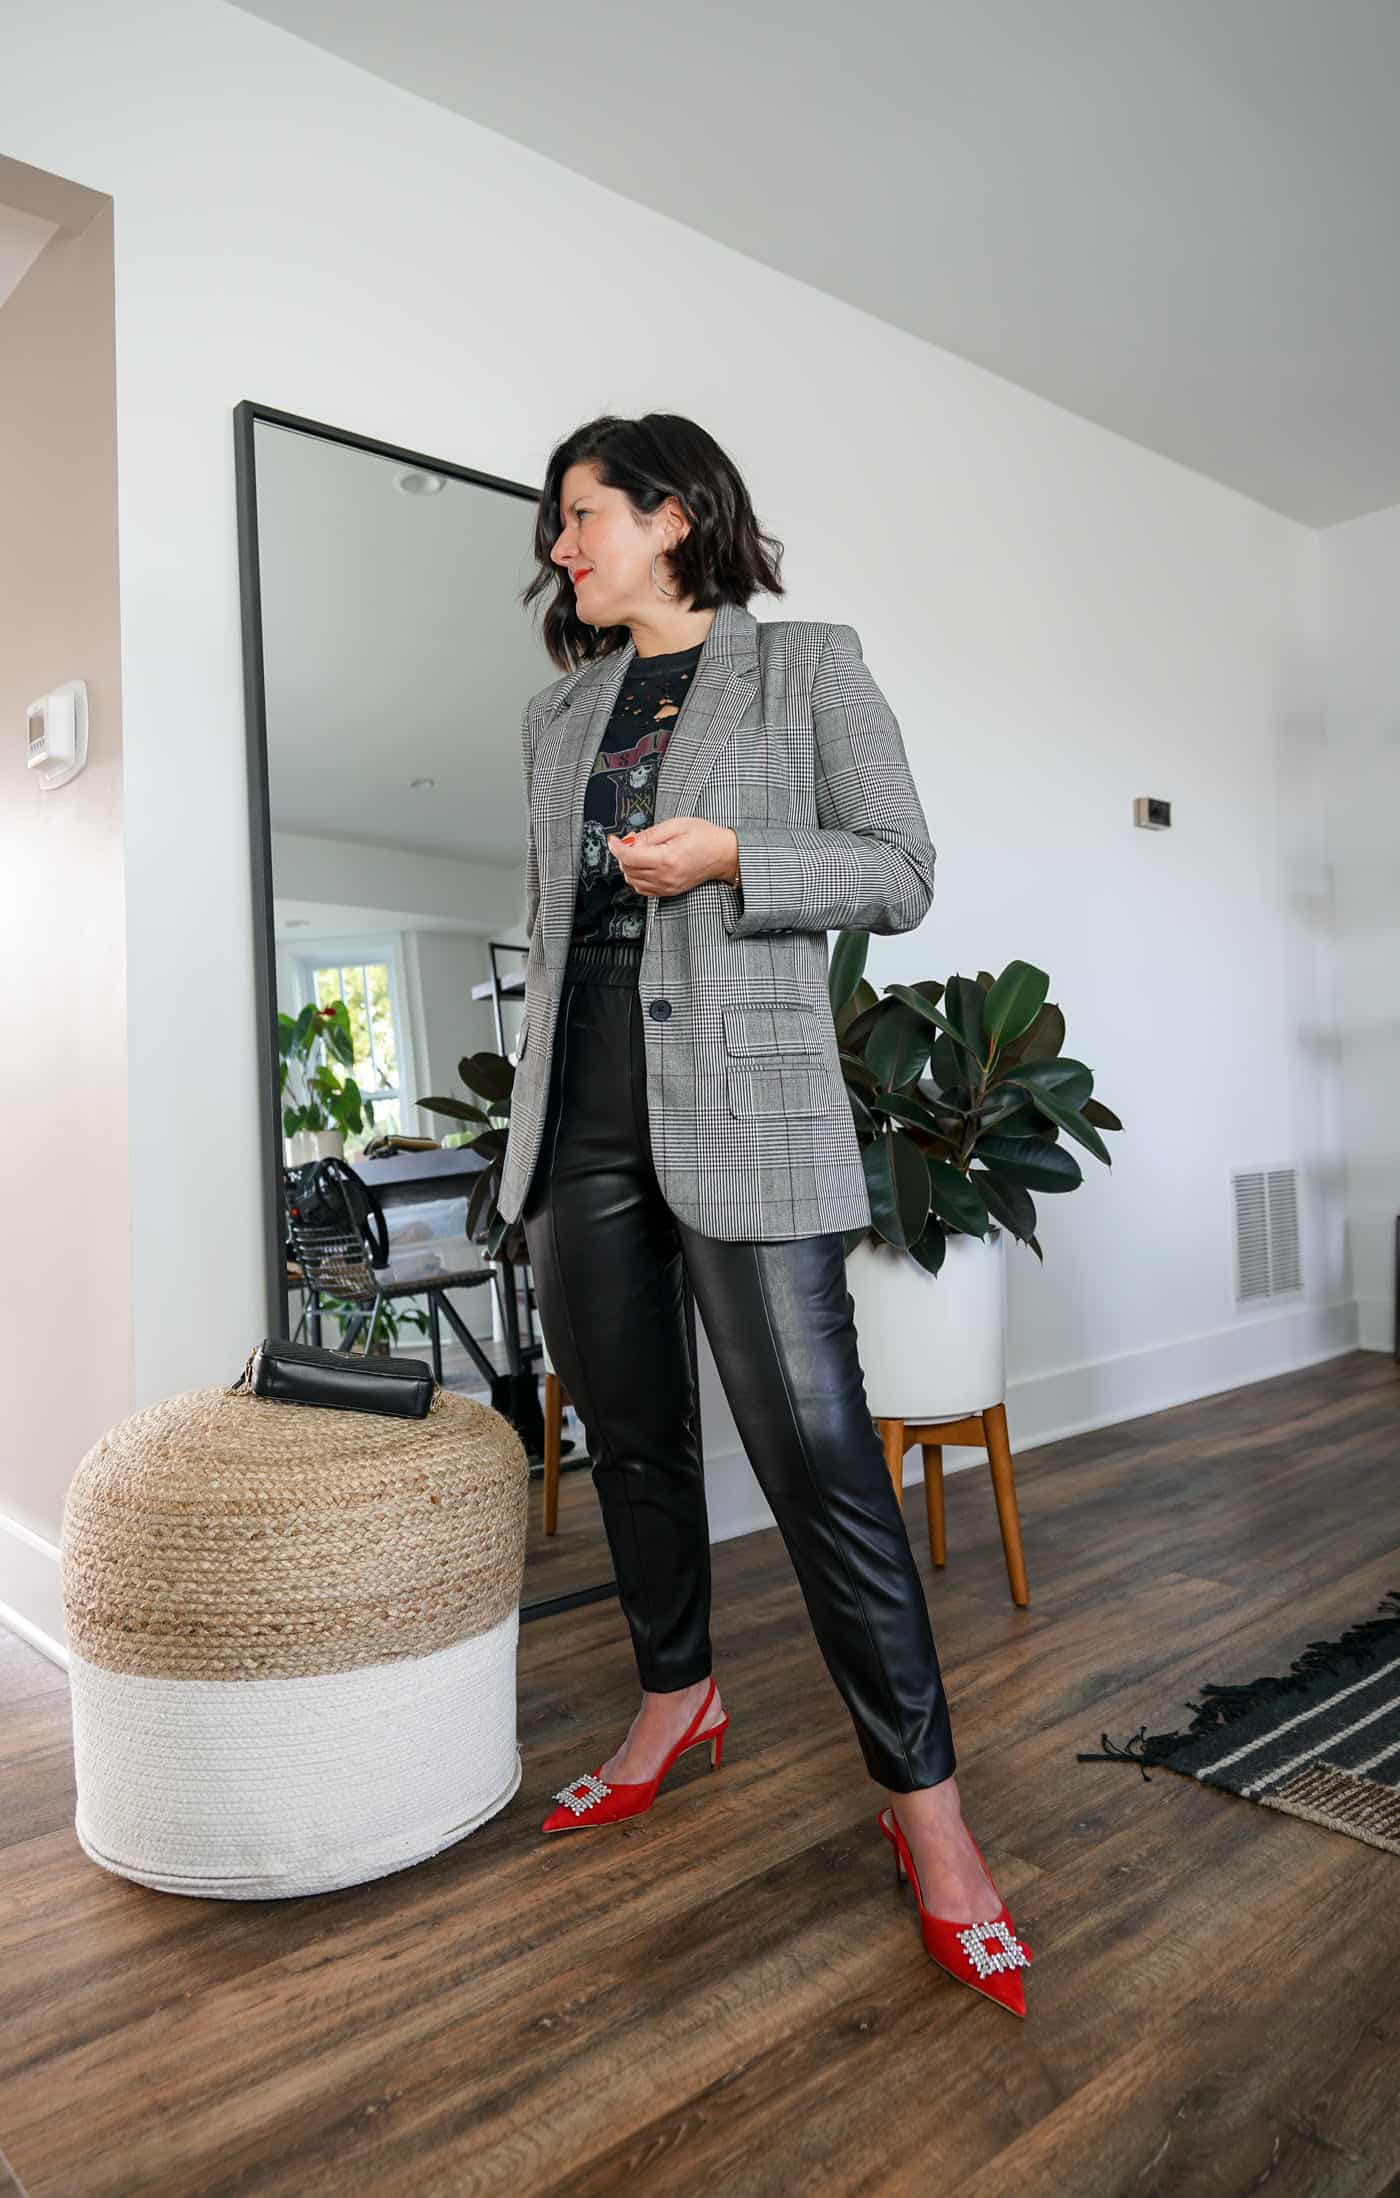 A Lily Love Affair wearing womes faux leather pants with a plaid blazer, a graphic tee and red heels